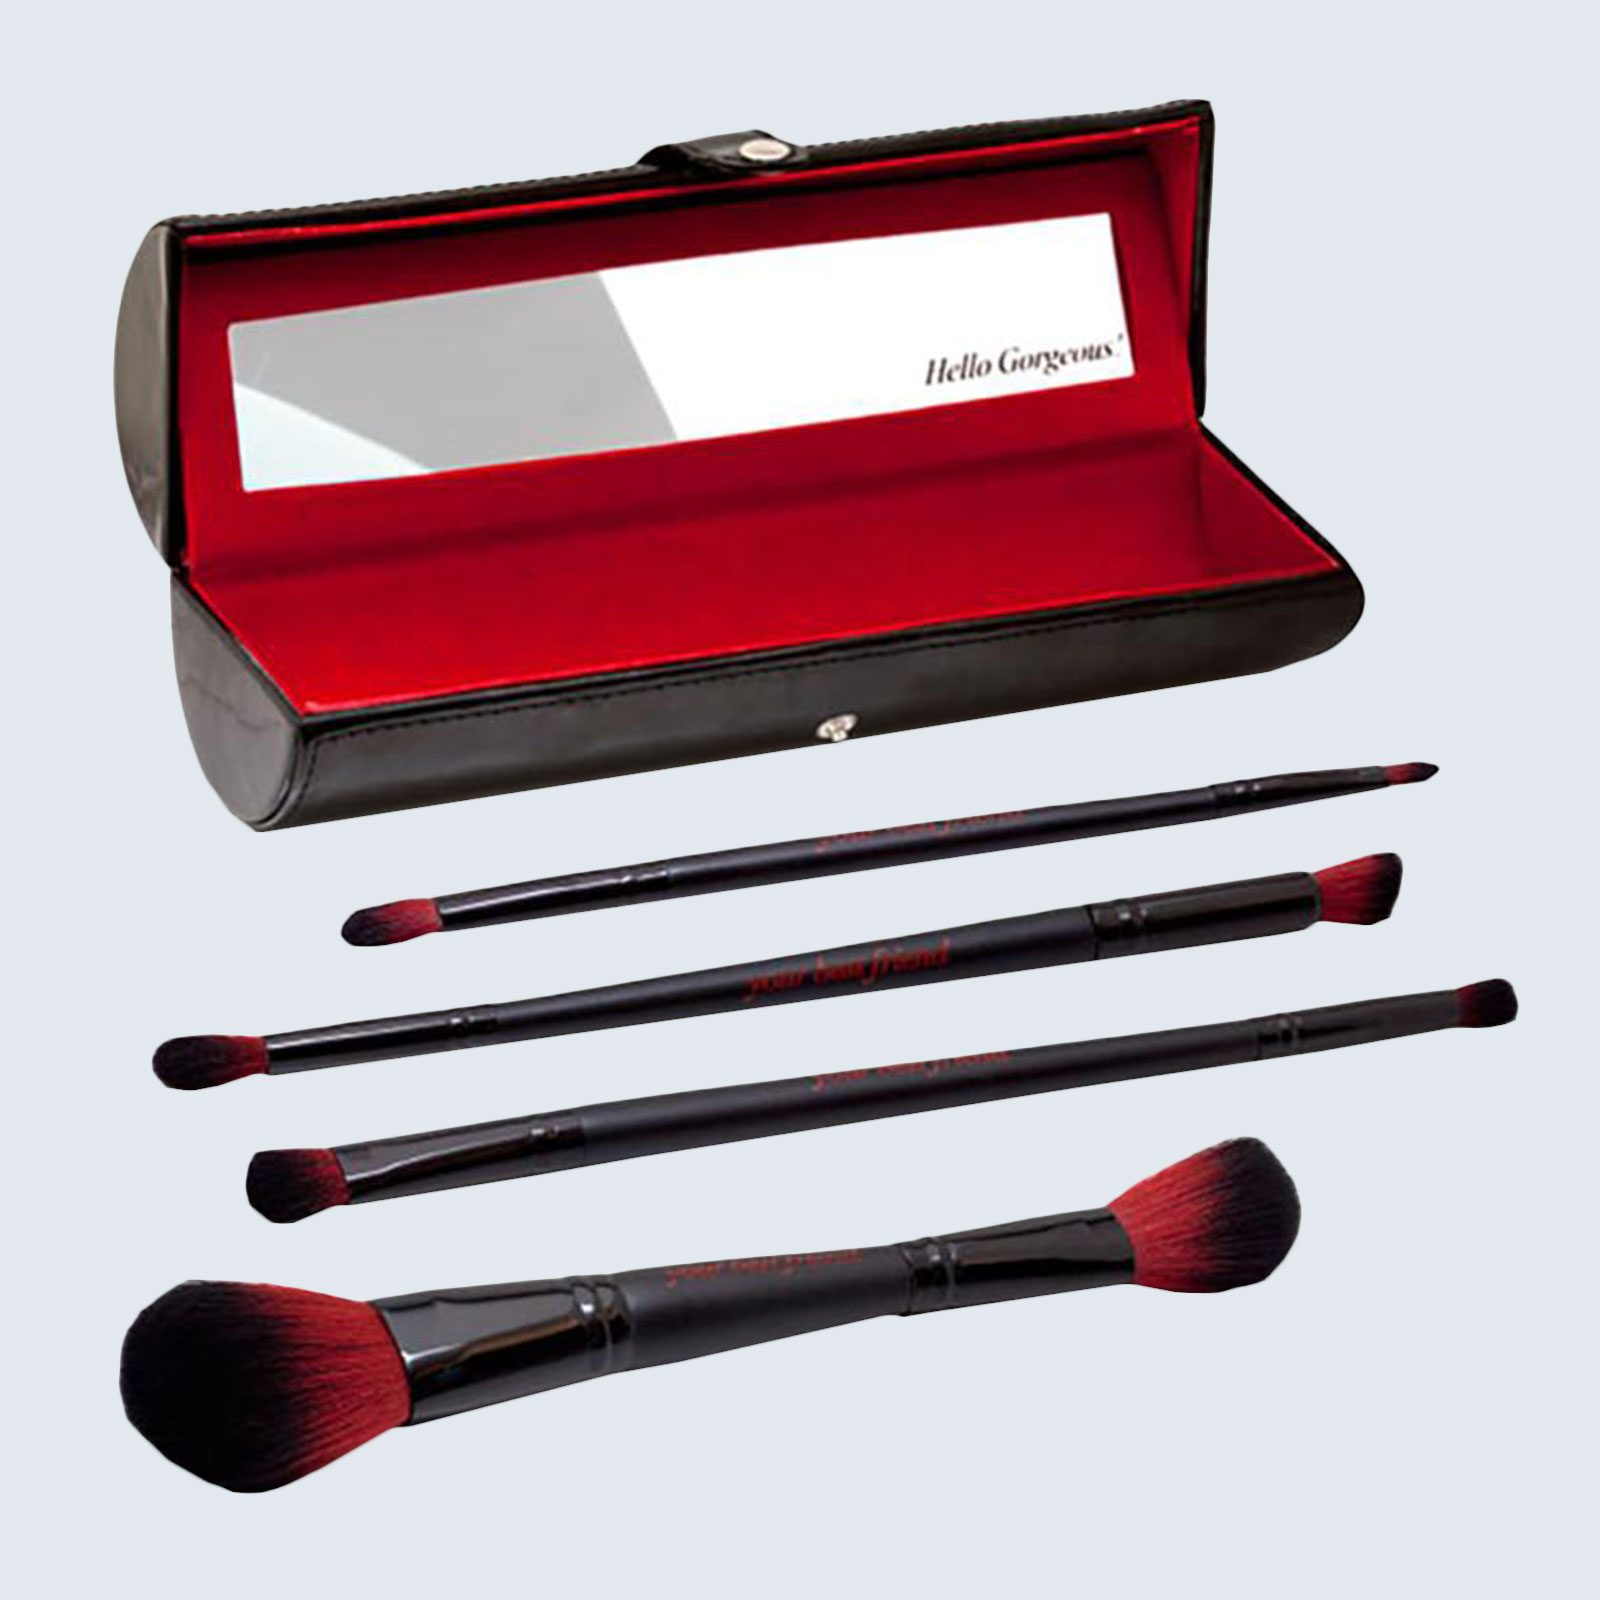 For beauty buffs: Ybf Beauty Double-Ended Brush Set